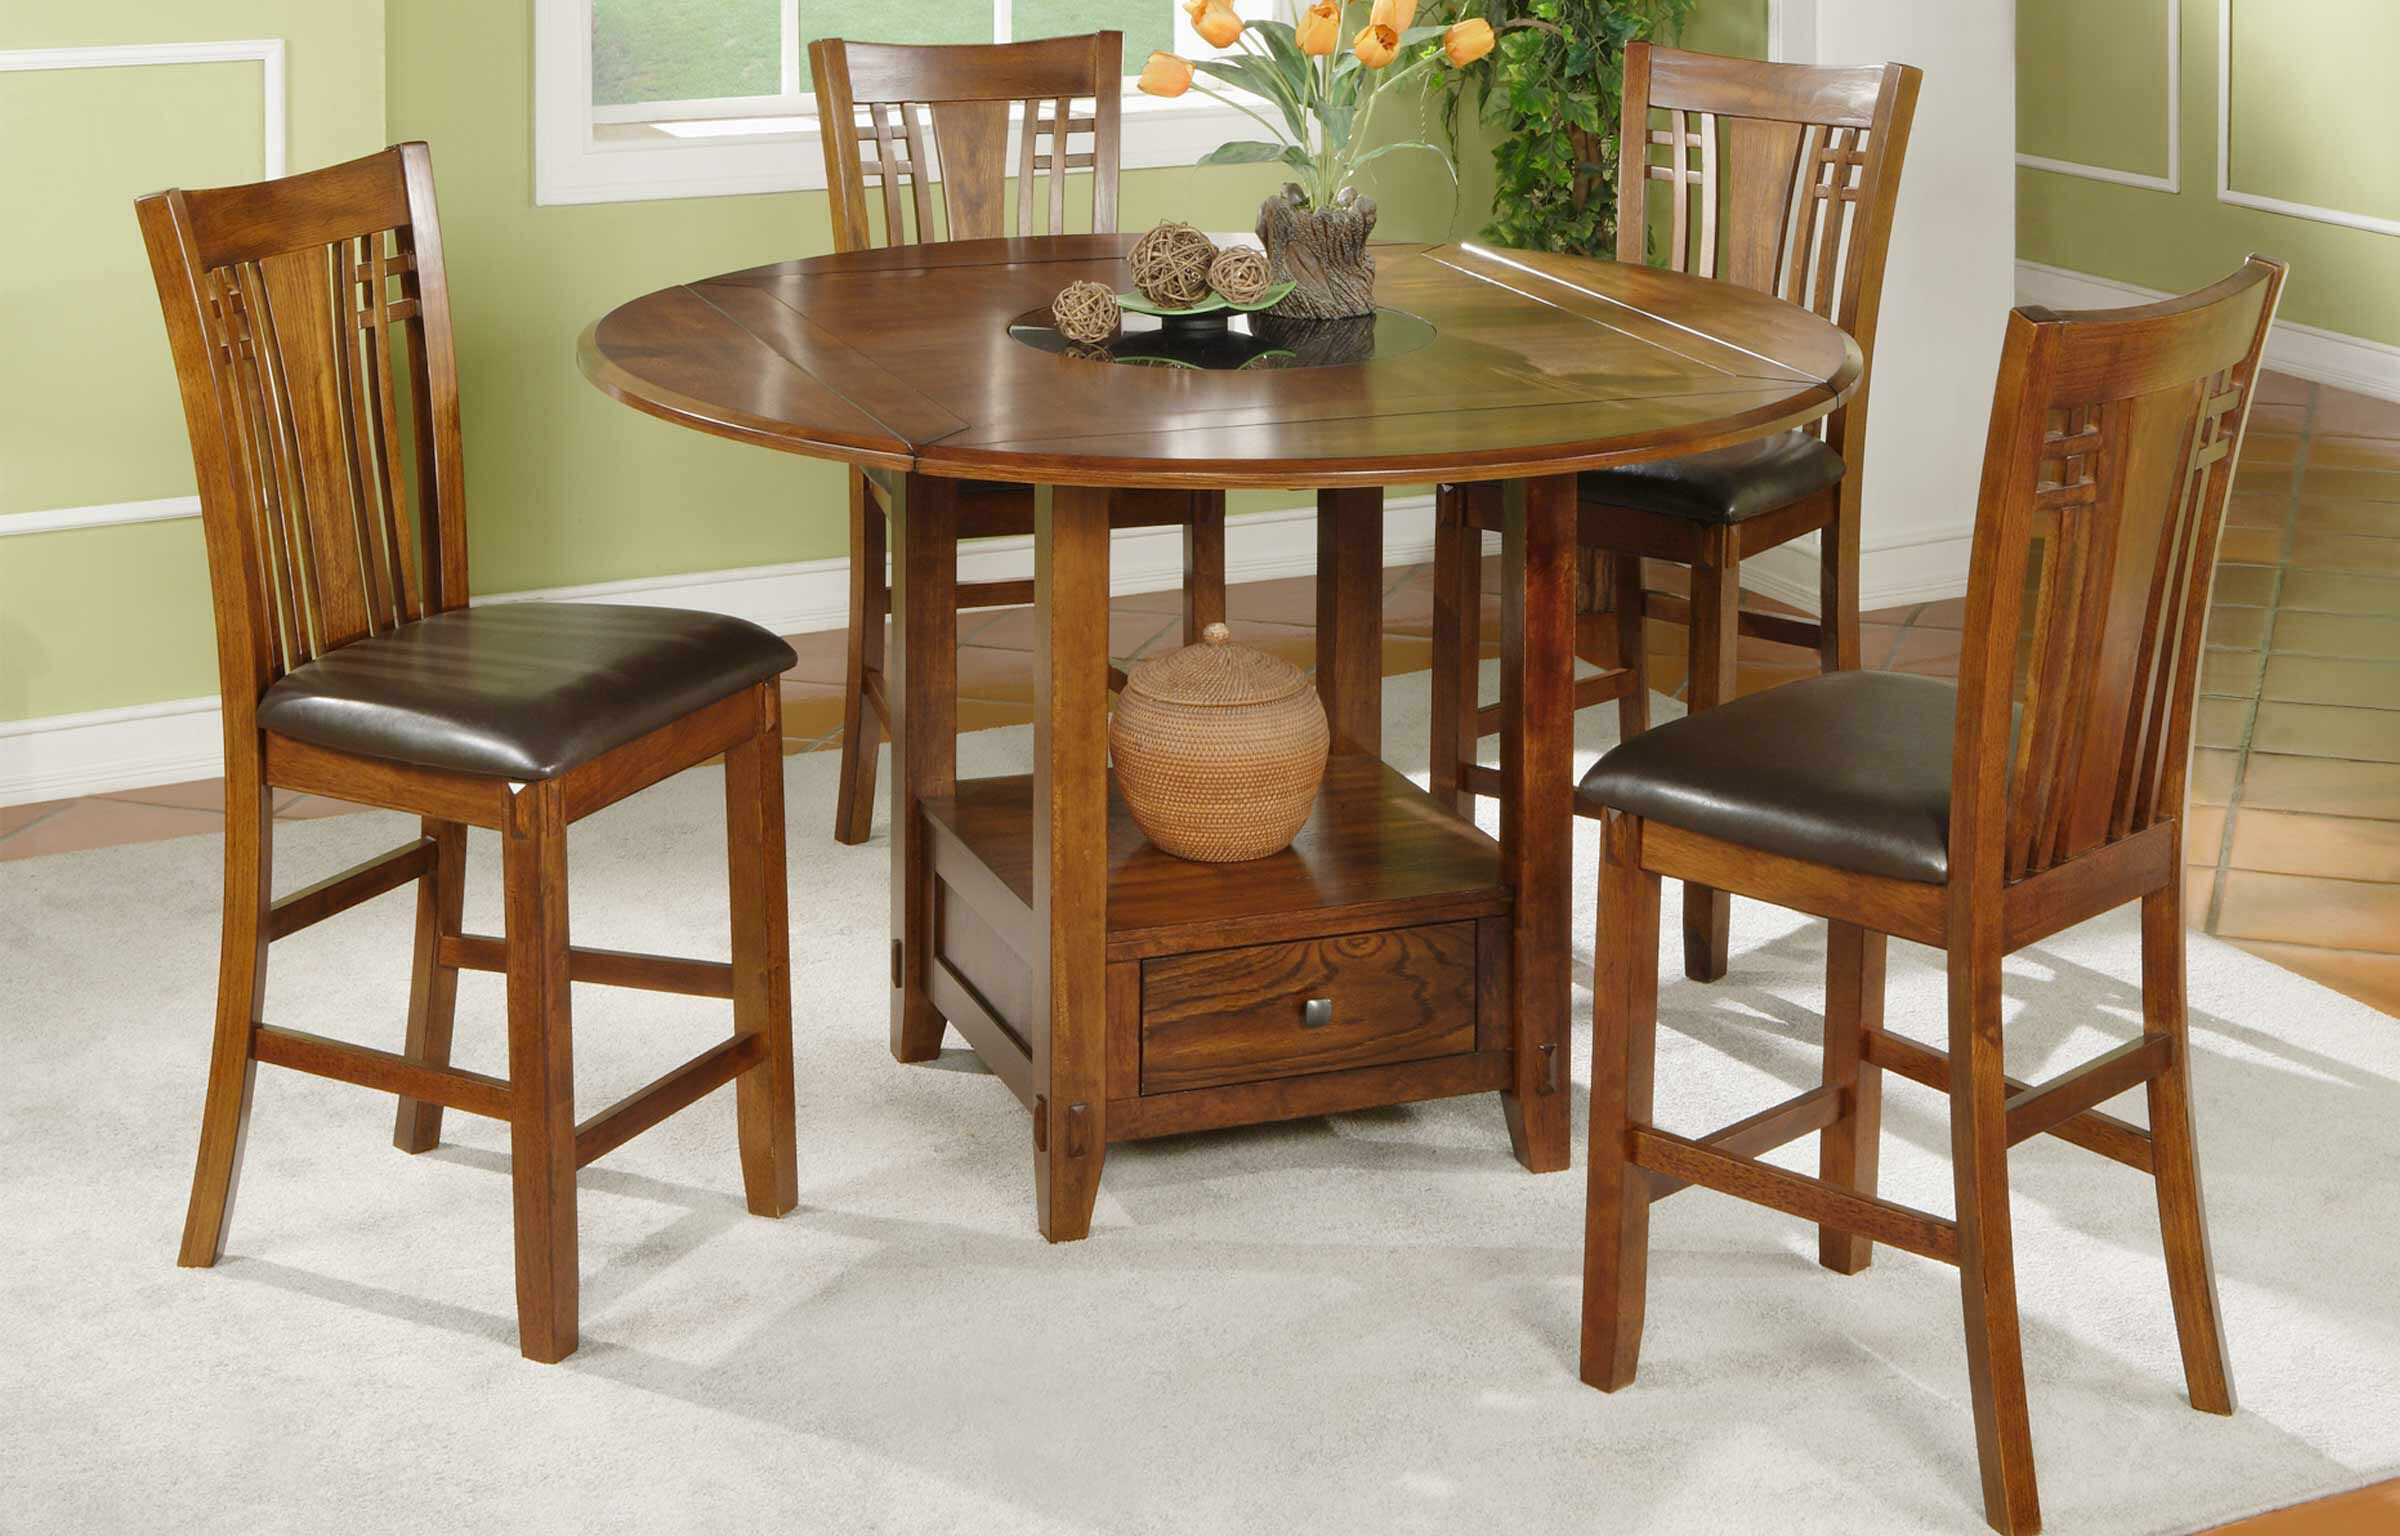 Traditional Five Piece Wood Grain Pub Set In Distressed Walnut